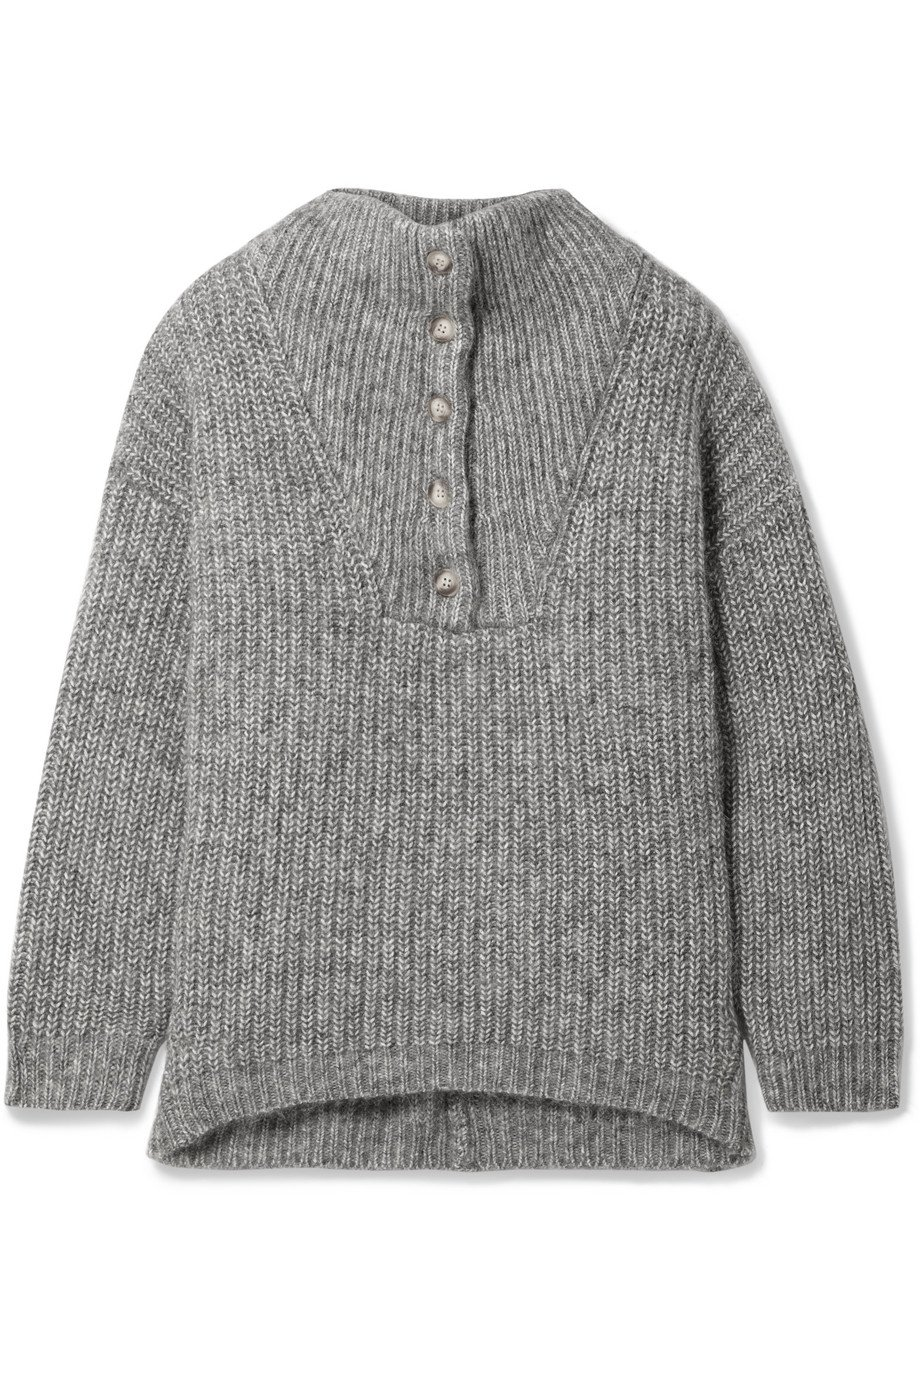 HATCH | The Jo ribbed cotton and alpaca-blend sweater | NET-A-PORTER.COM